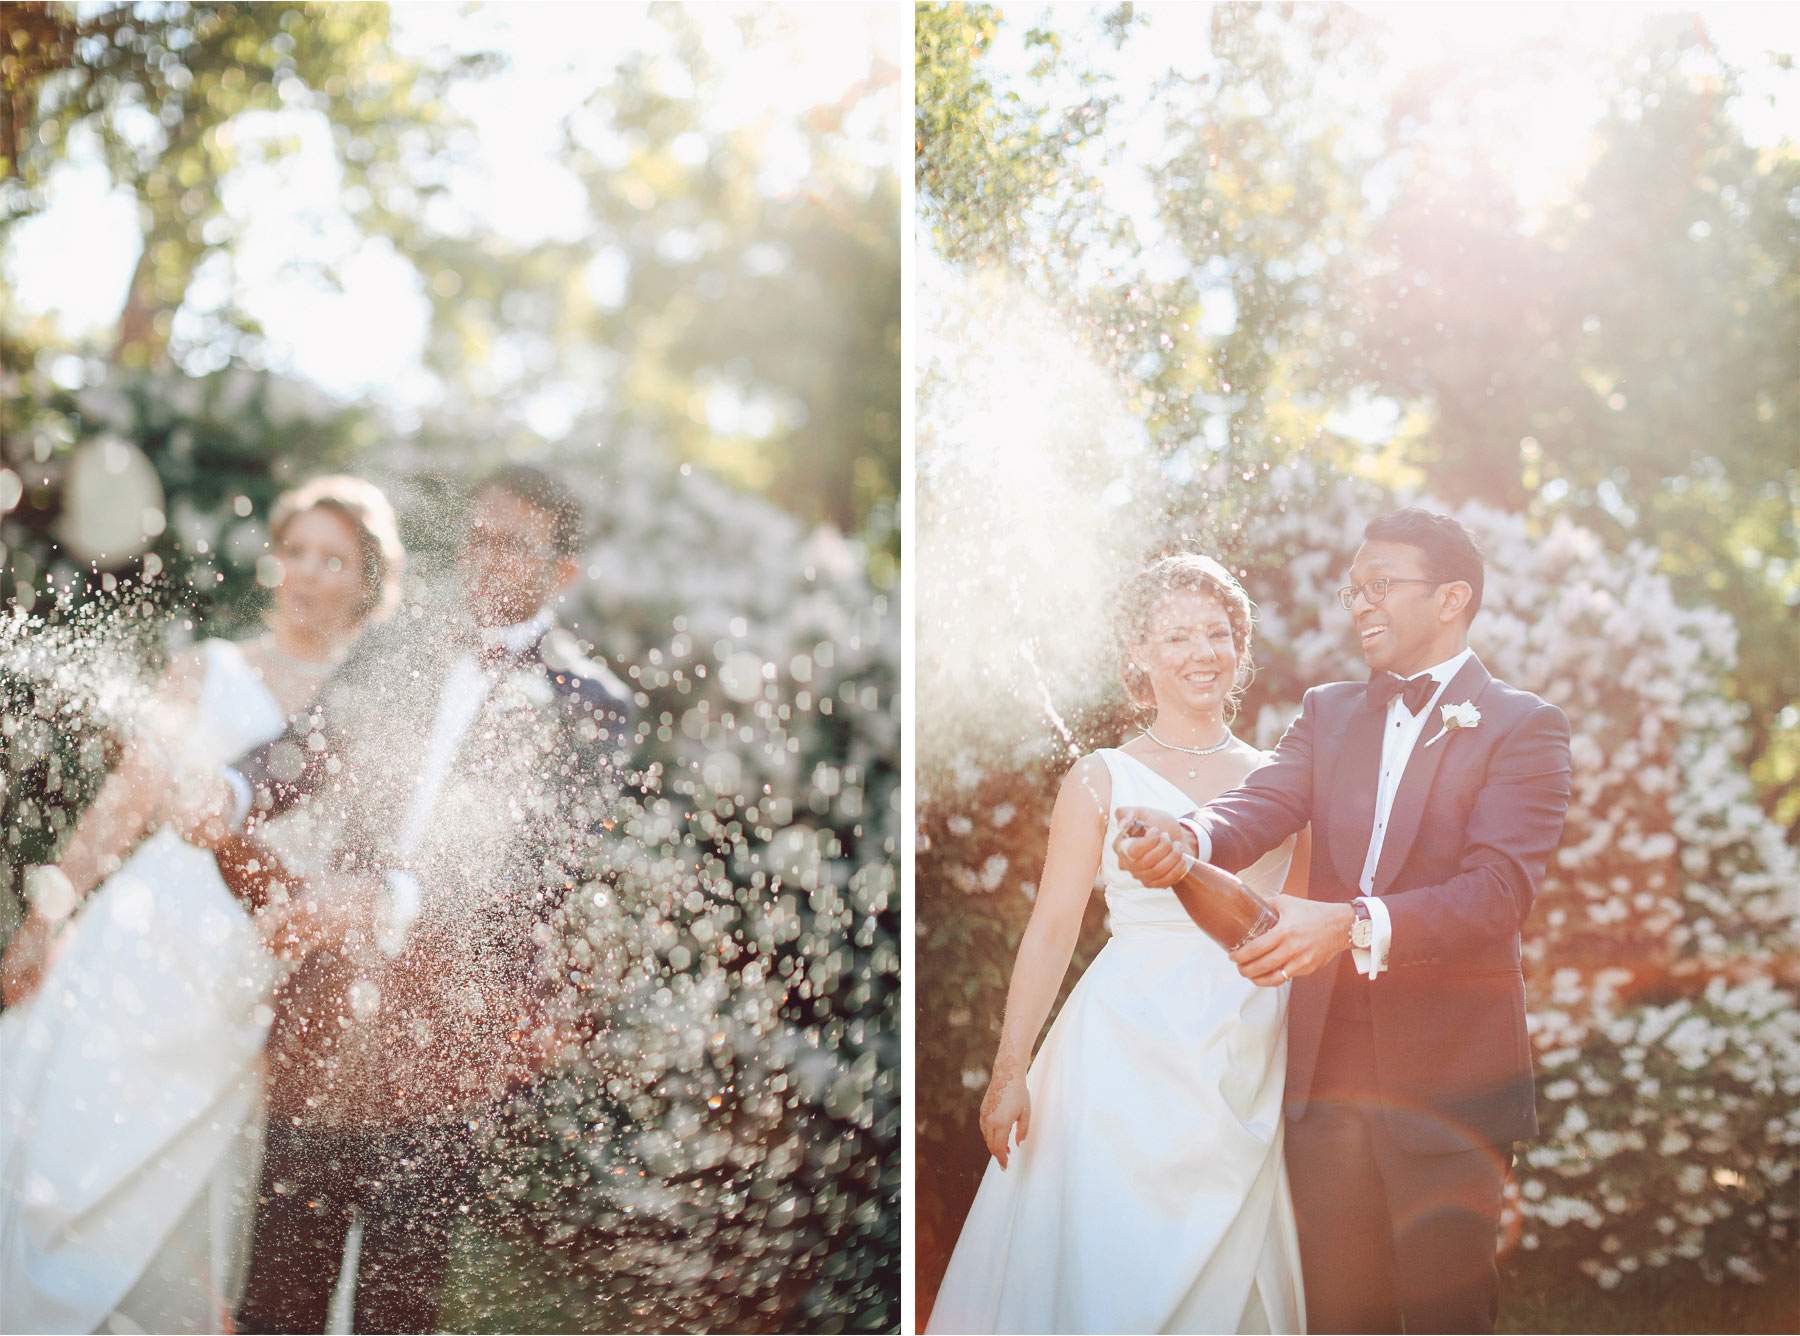 20-Minneapolis-Minnesota-Wedding-Photographer-by-Andrew-Vick-Photography--Spring-Bride-Groom-Champagne-Spray-Vintage-Rachel-and-Venu.jpg